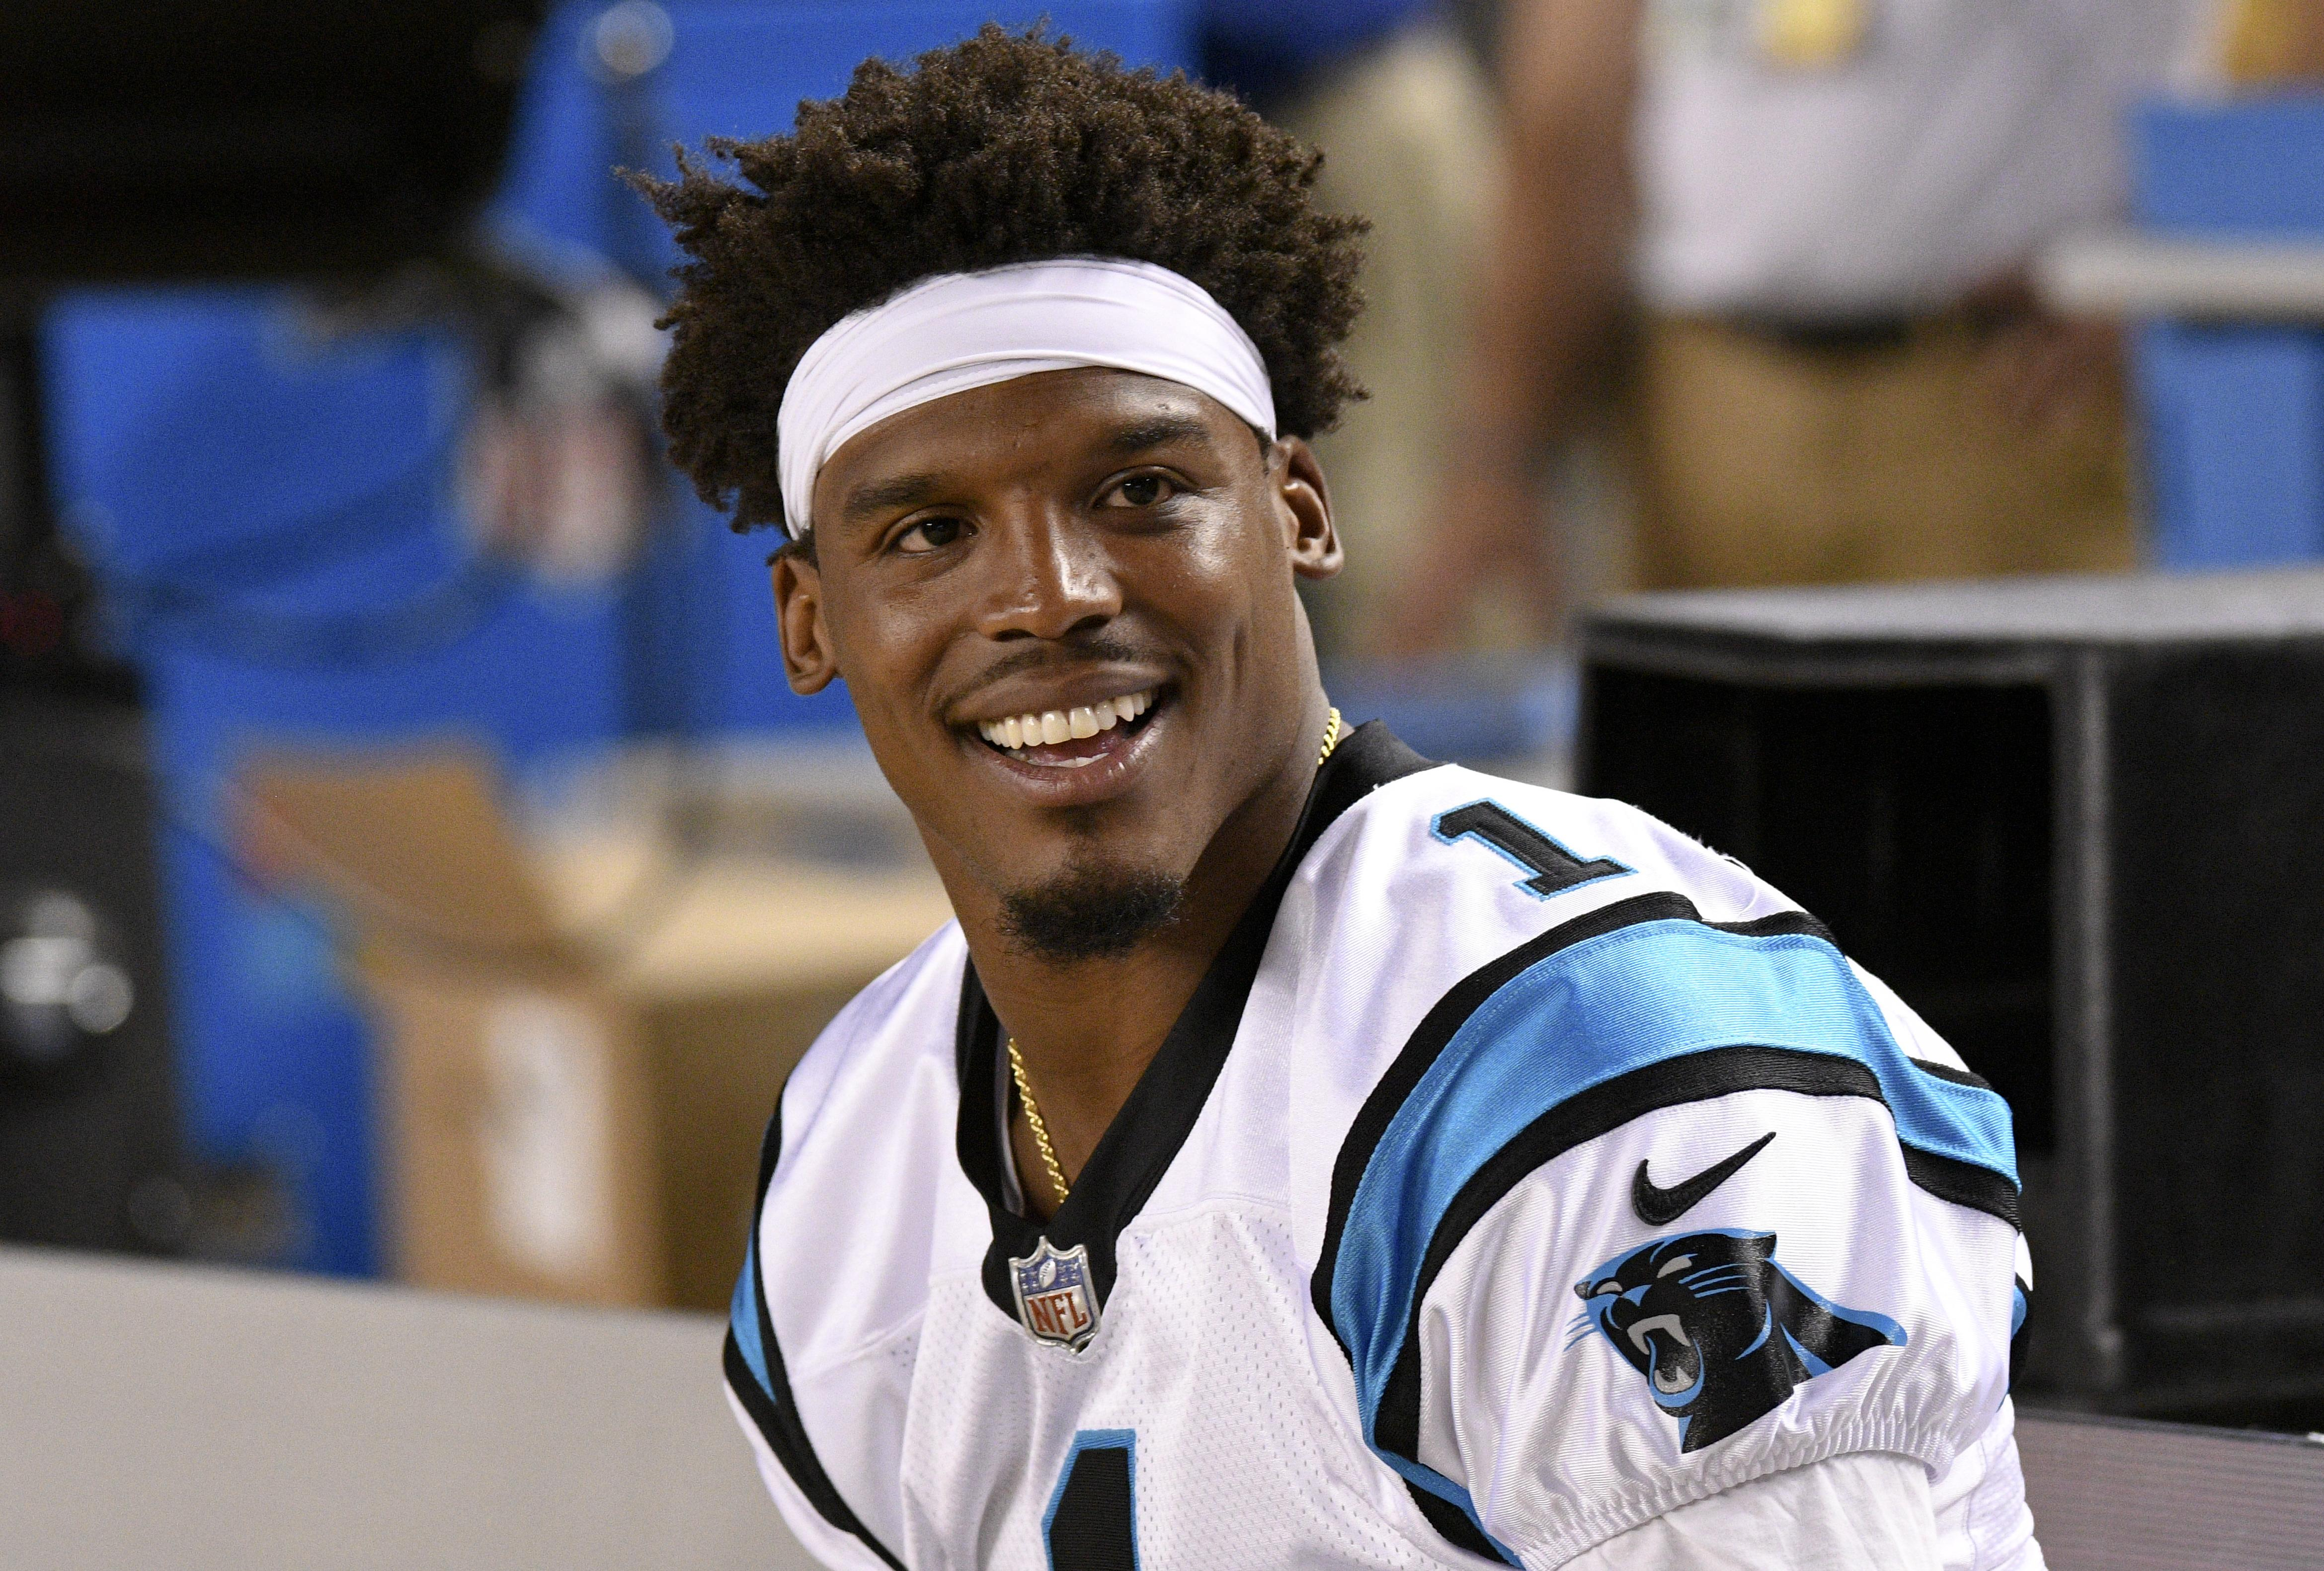 Cam Newton will be hoping to propel the Panthers to another Super Bowl